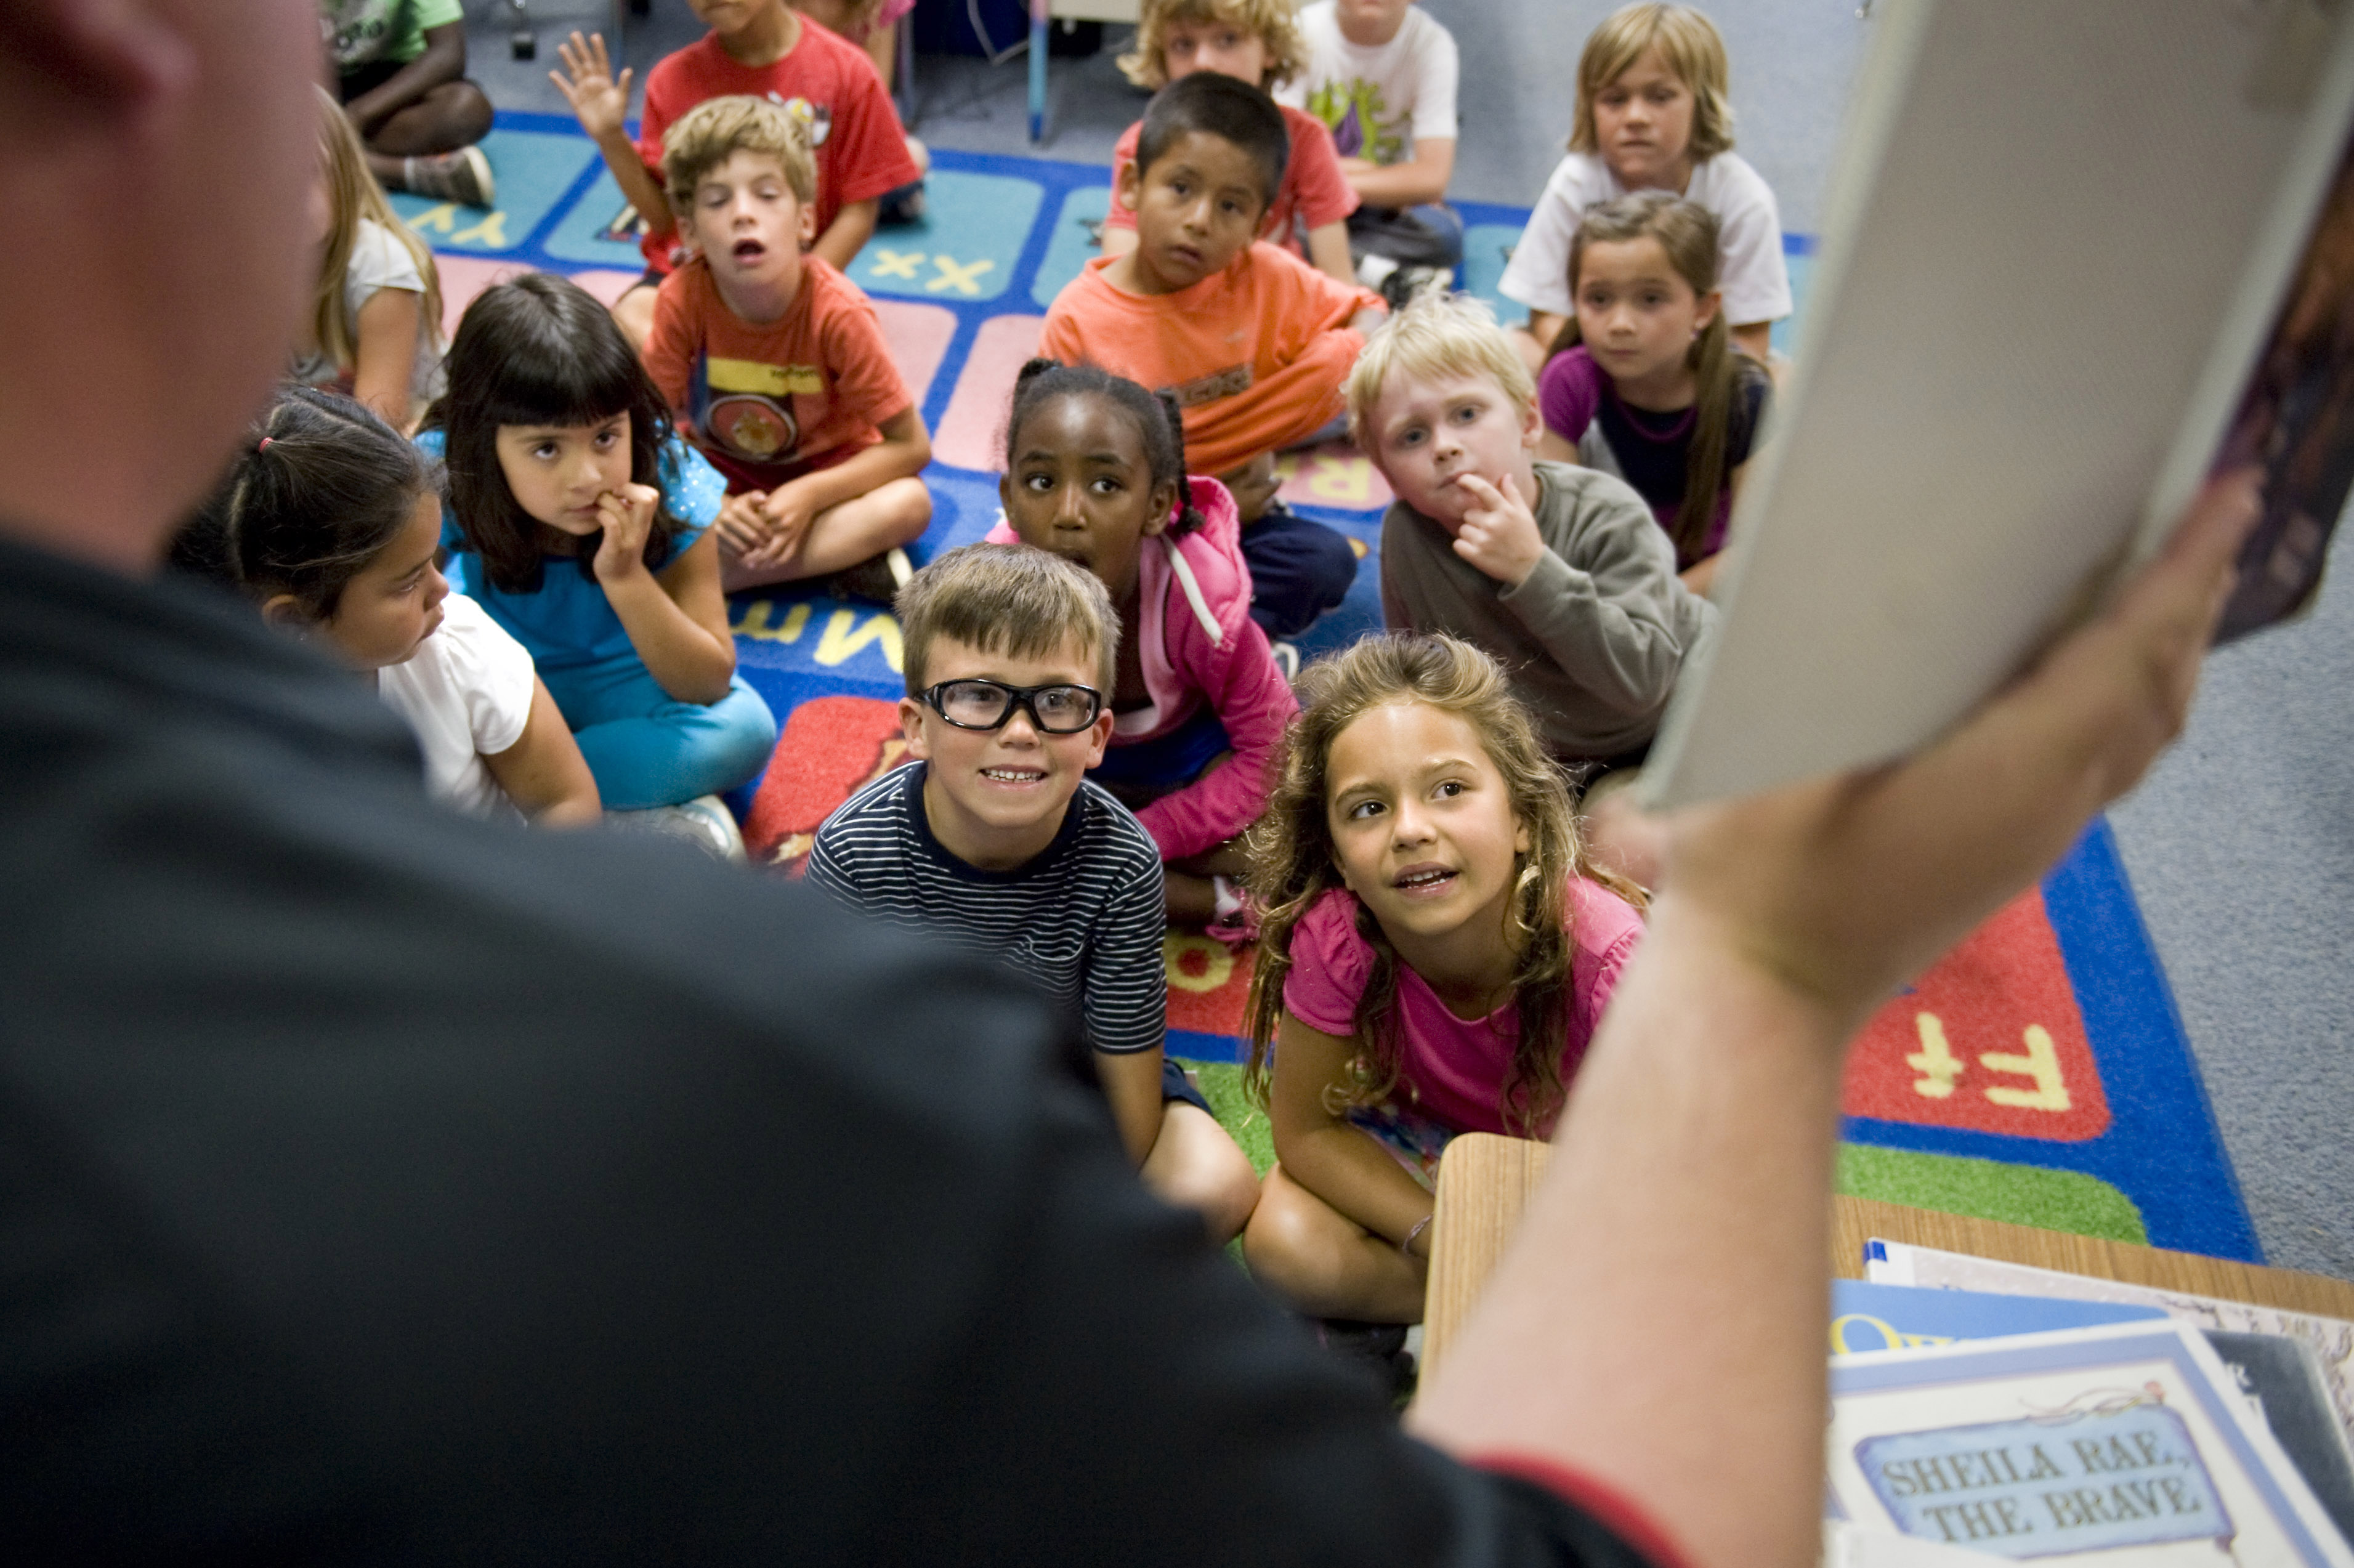 Young students sit on a carpet looking at a teacher holding part of a lesson